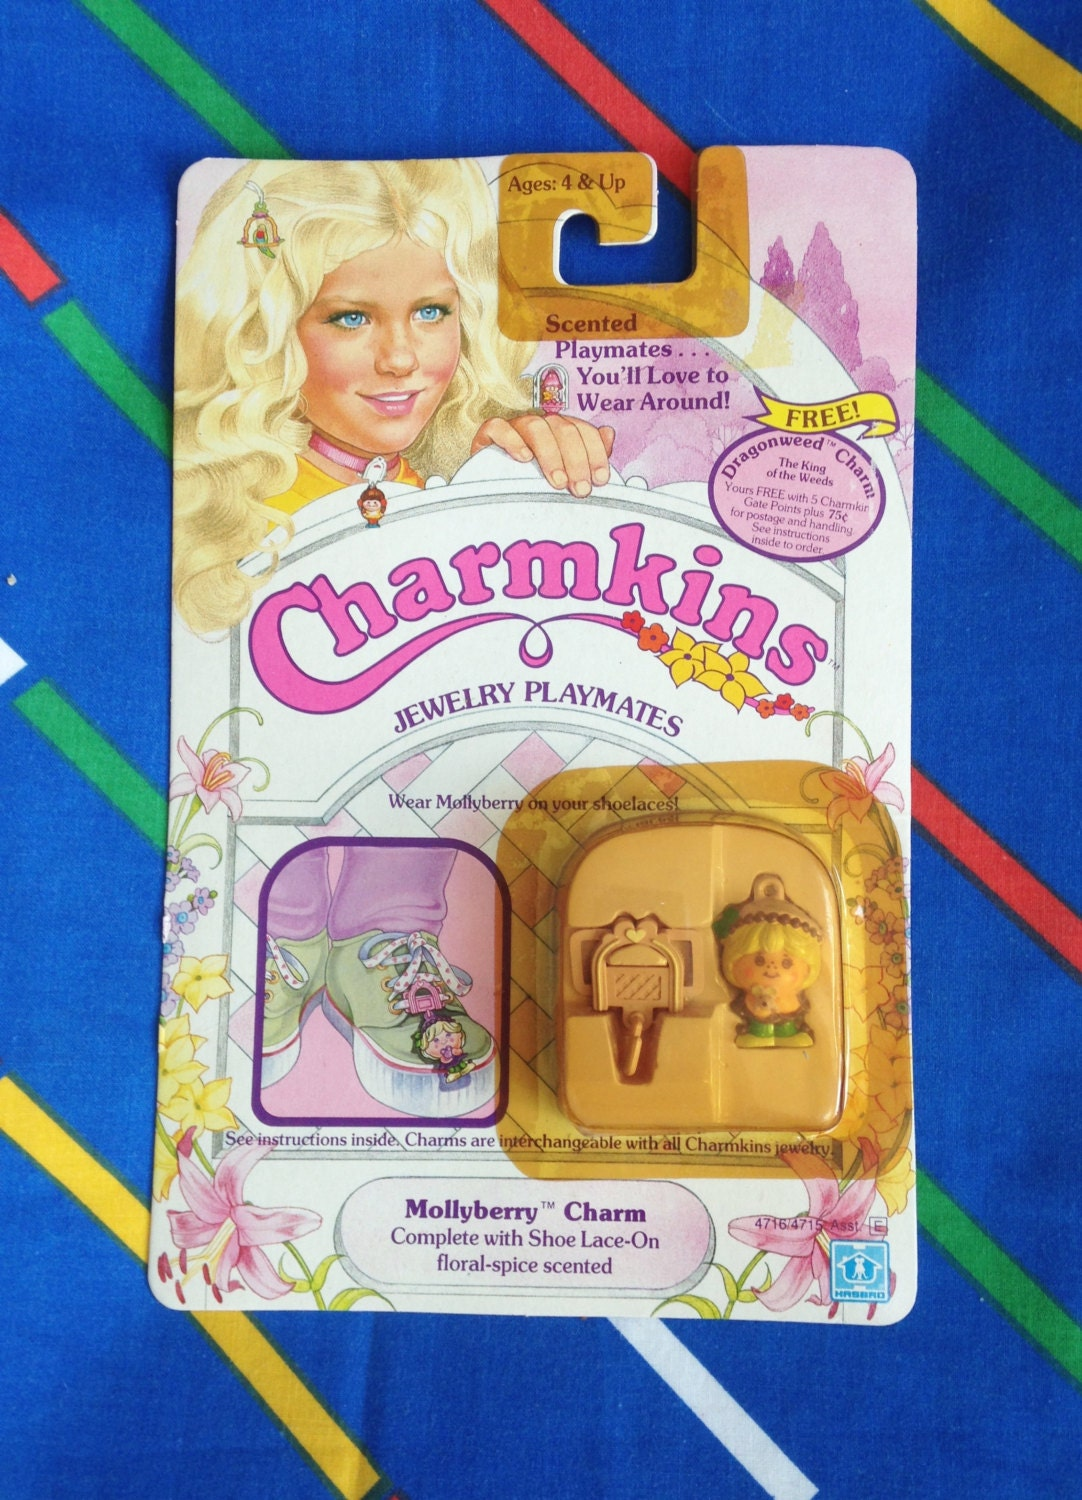 Vintage 1984 Charmkins MOLLYBERRY molly berry miniature doll 1980s Hasbro shoelace charm MOC MIB mint rare Factory Sealed spice scented new